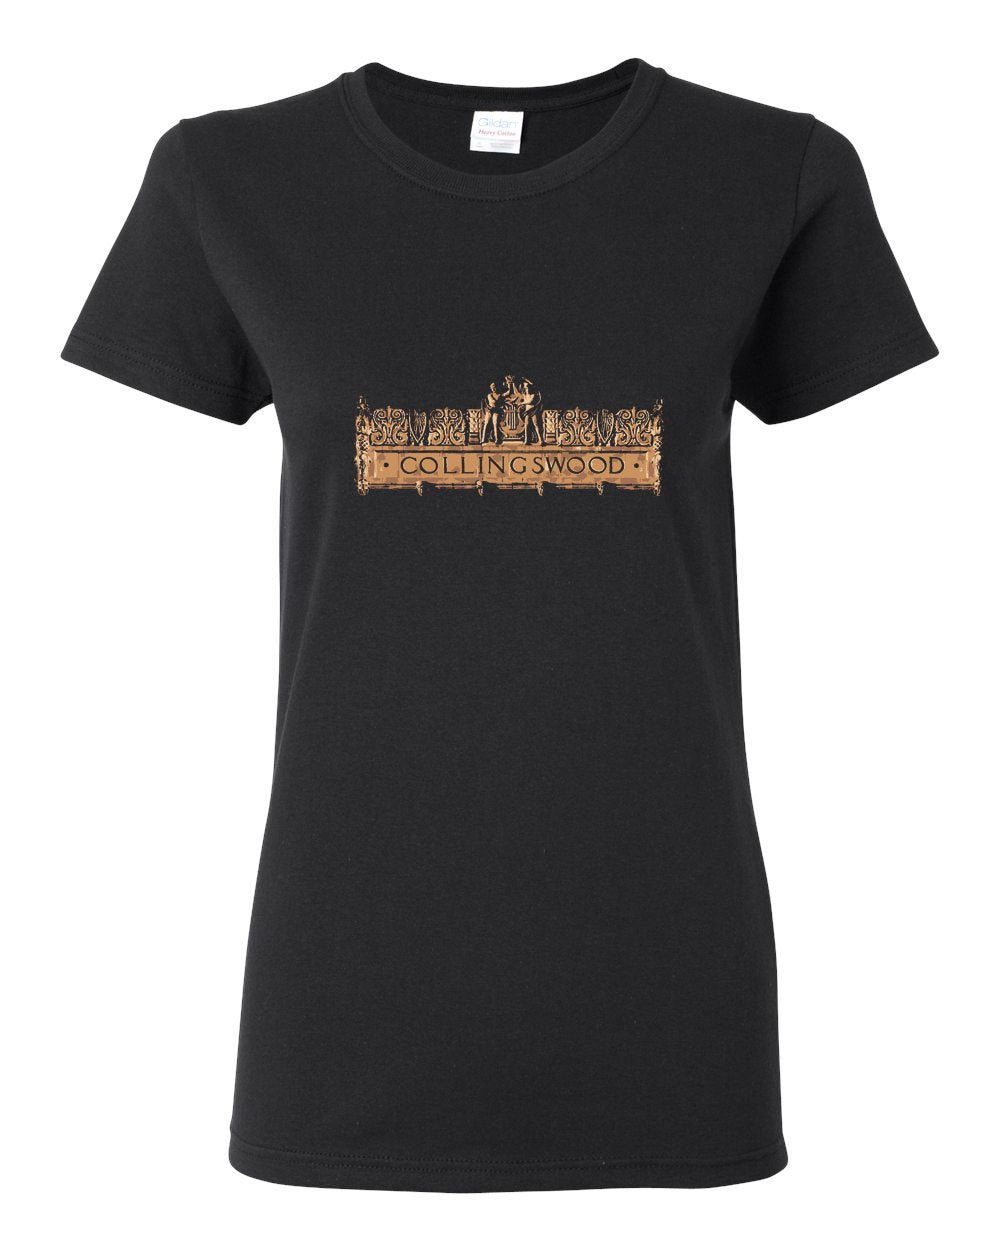 Collingswood Crest LADIES Missy-Fit T-Shirt